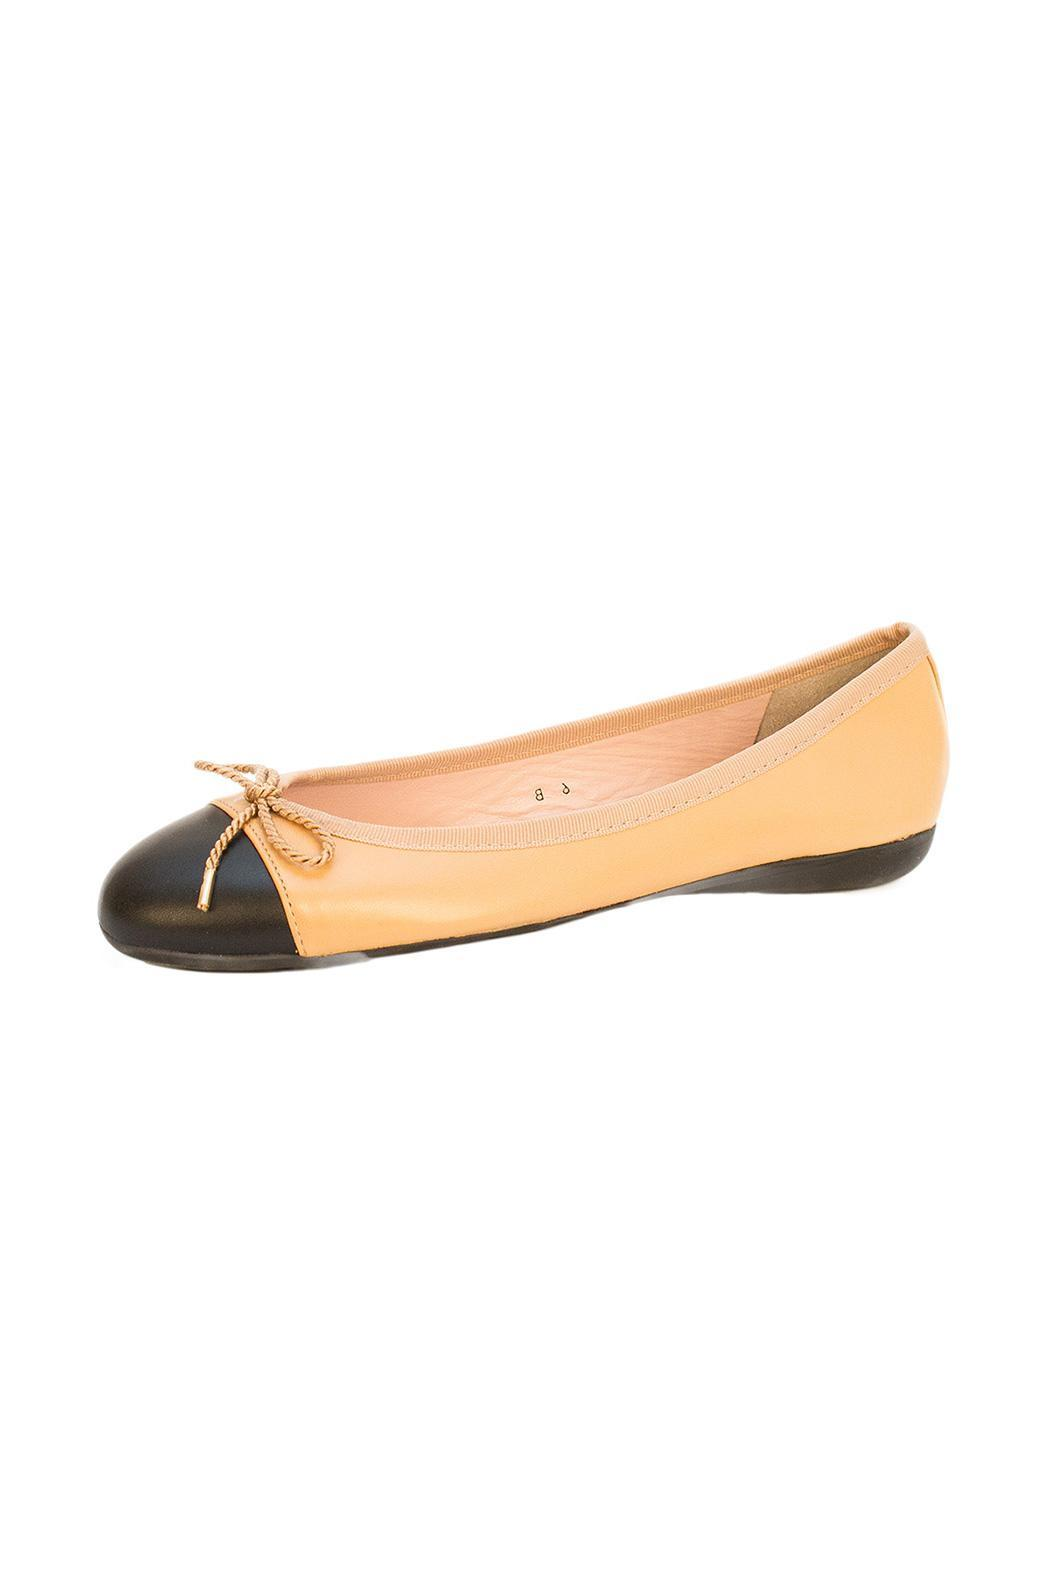 Paul Mayer Beige Ballet Flat - Front Cropped Image